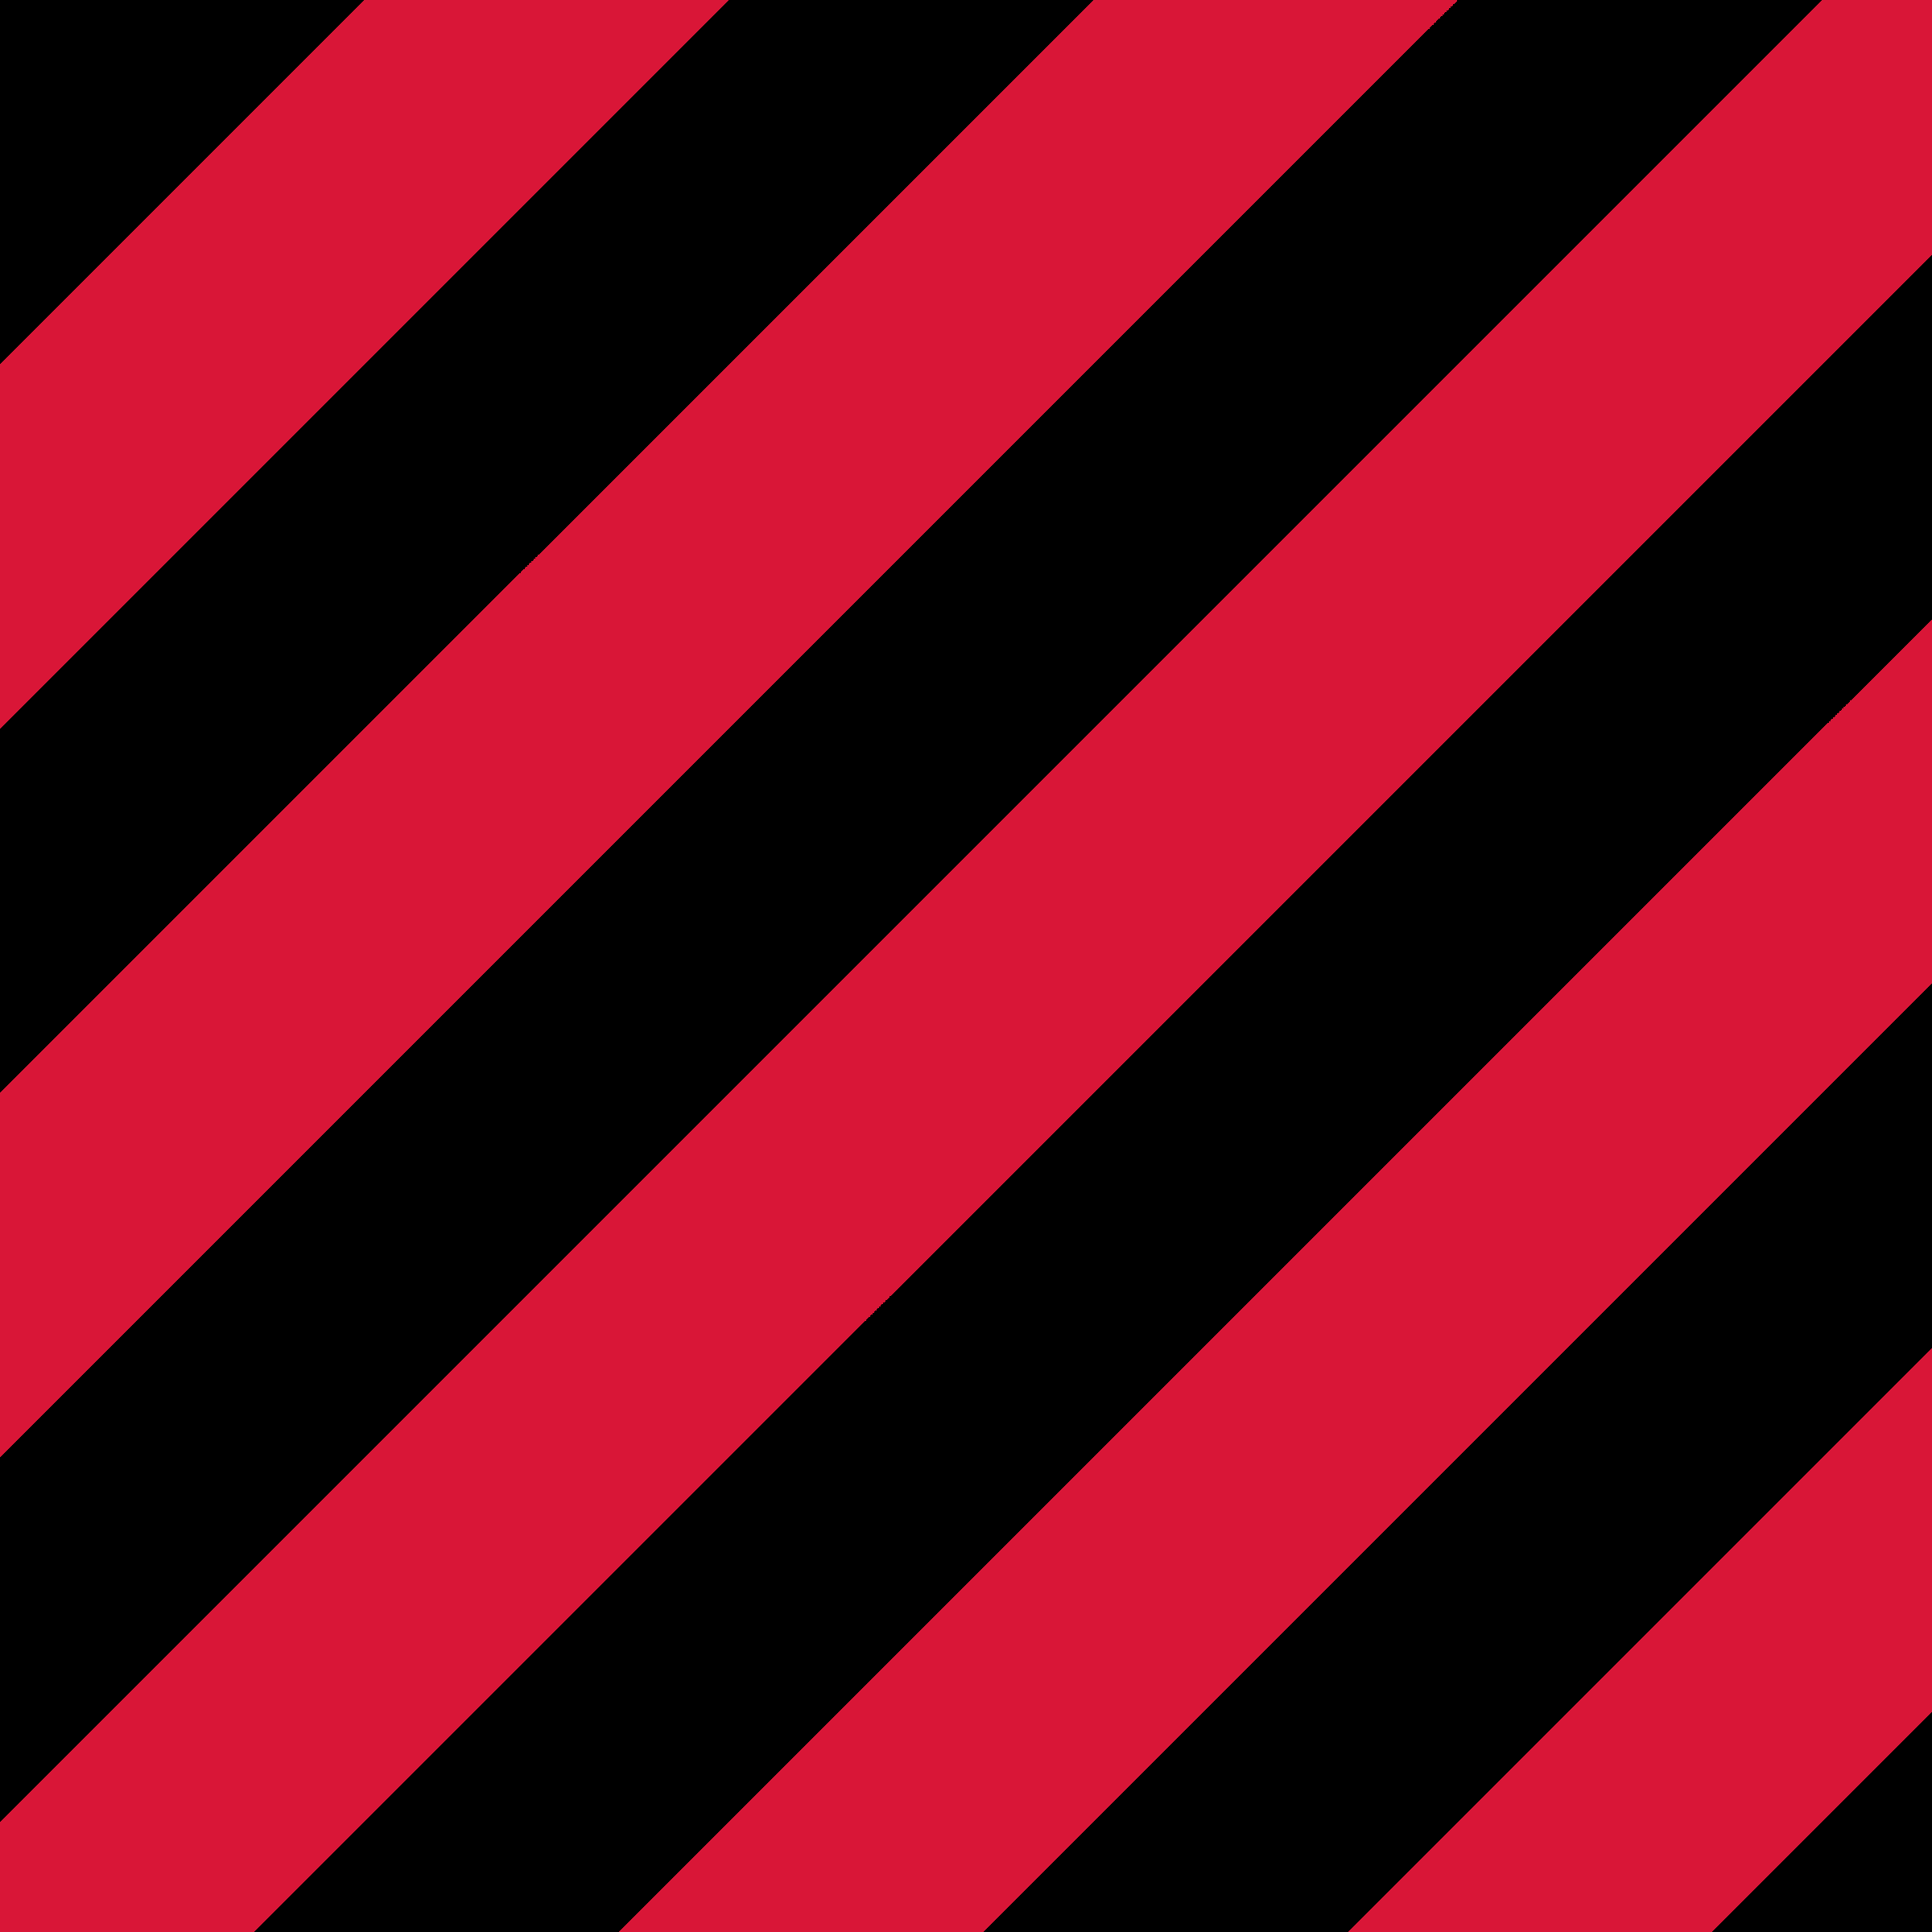 Red Black Stripe  Gradient  By Ryanlerch